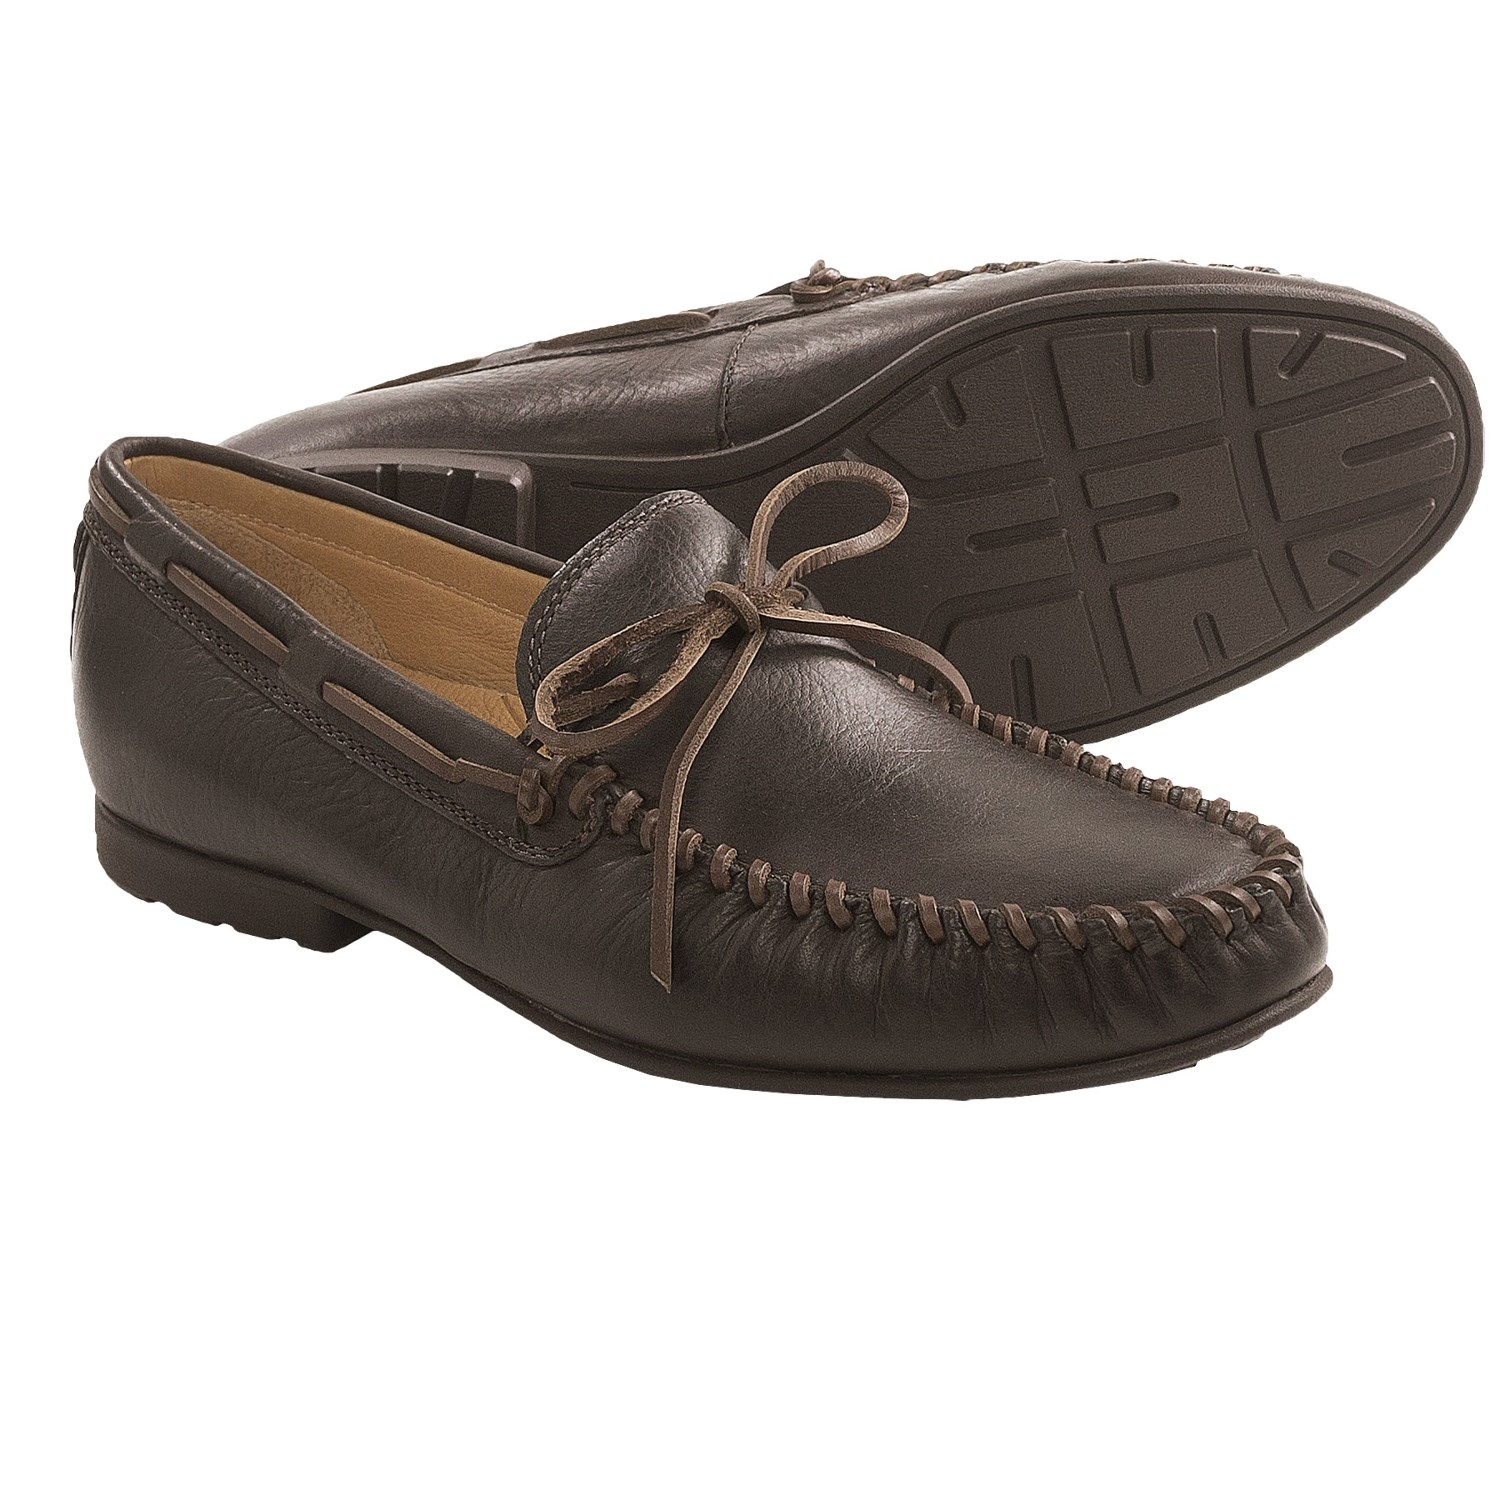 moccasin guys Explore the official ugg® women's casual moccasin collection for the perfect fit discover this season's best moccasin styles for women at uggcom.